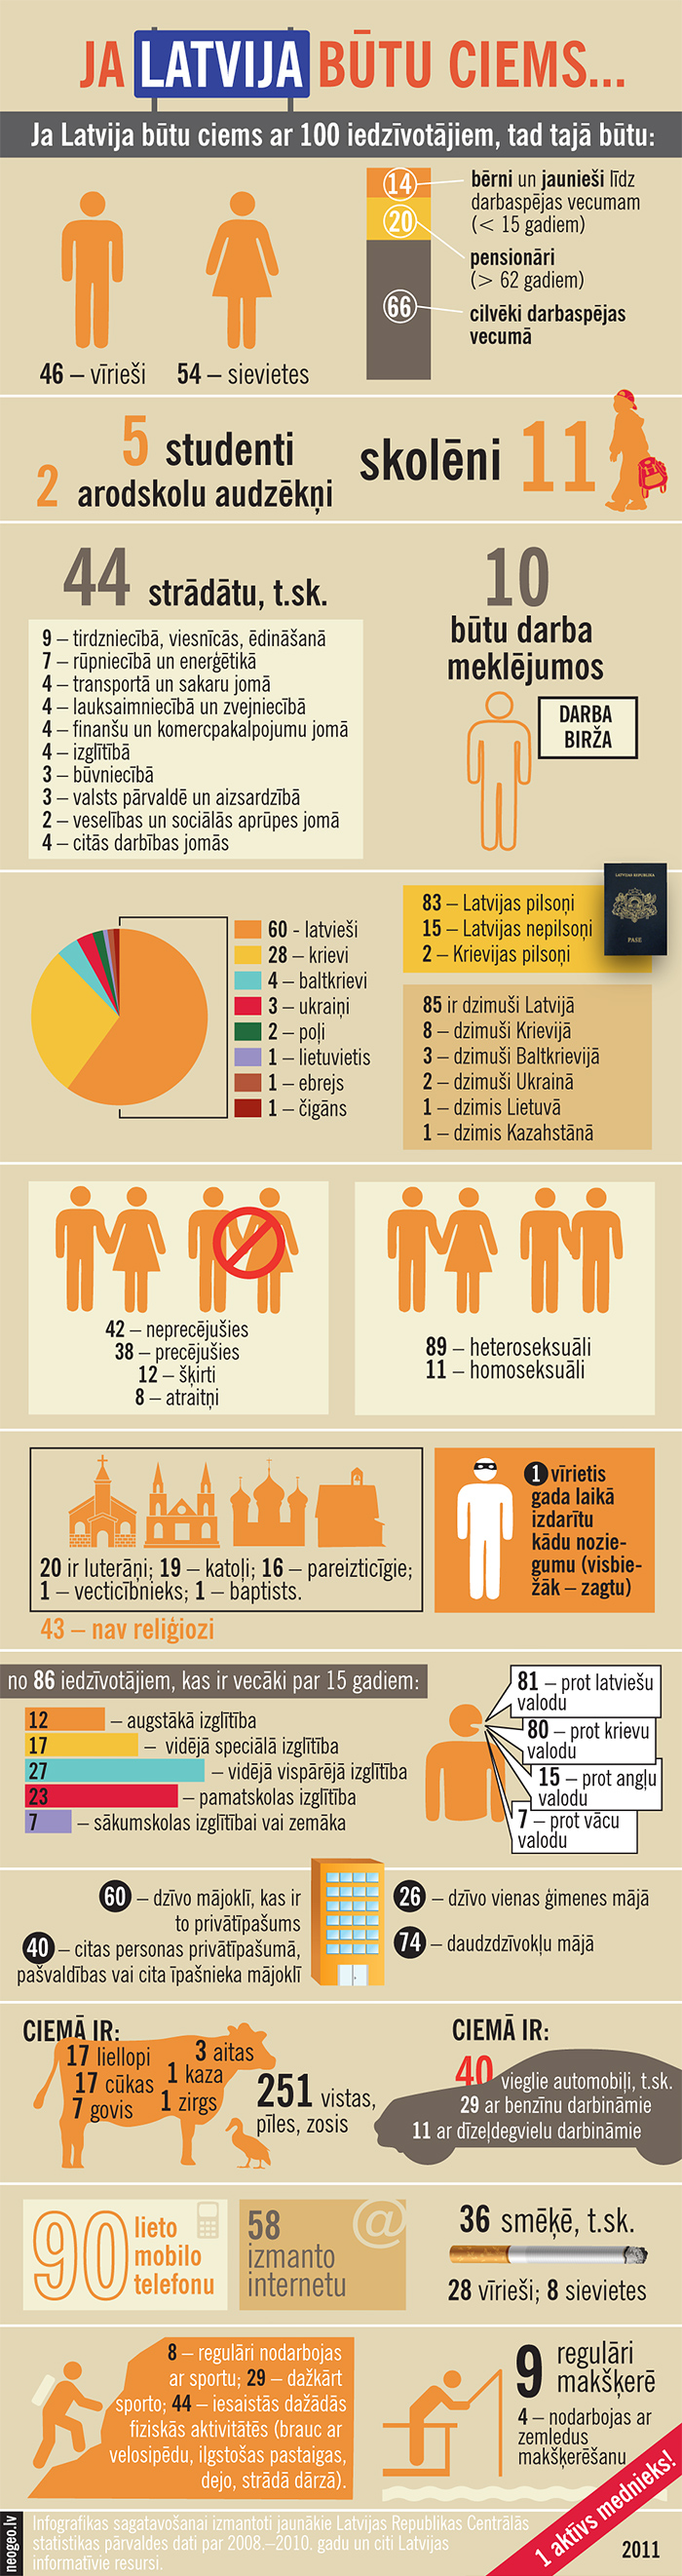 Infografika: Ja Latvija būtu ciems /  Infographic: Latvia as a village of hundred people